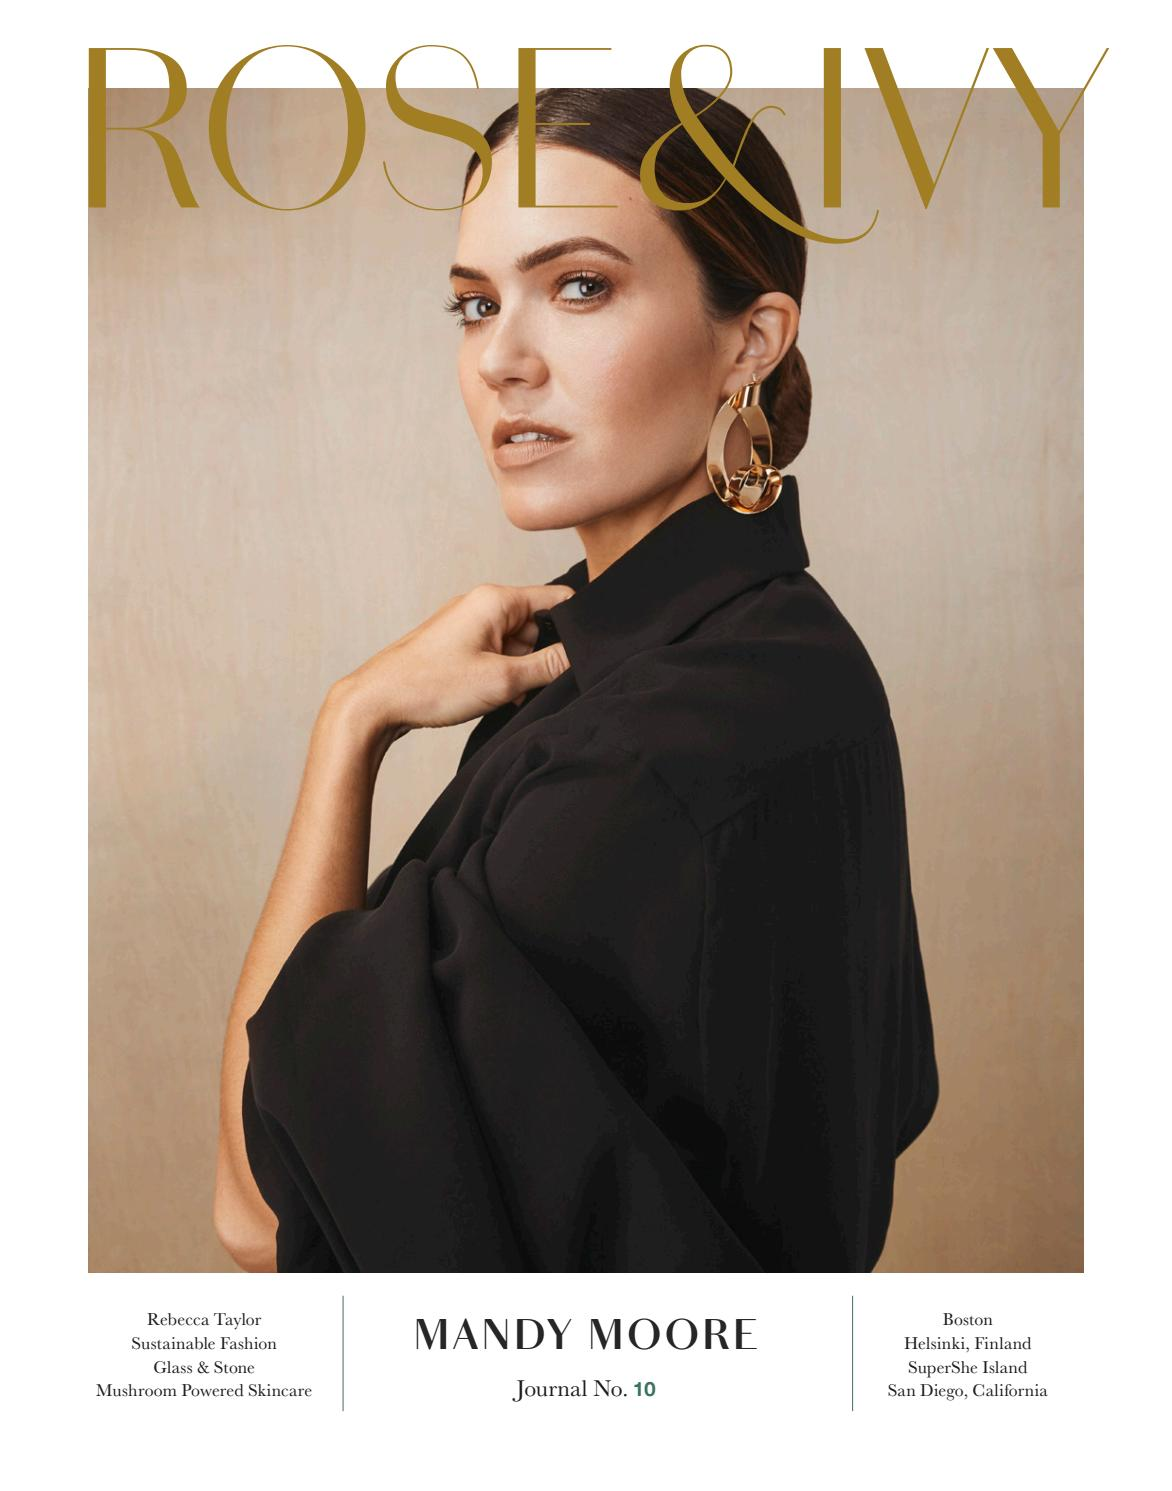 78e869c8ad06 ROSE   IVY Journal Issue No.10 Starring Mandy Moore by ROSE   IVY Journal -  issuu